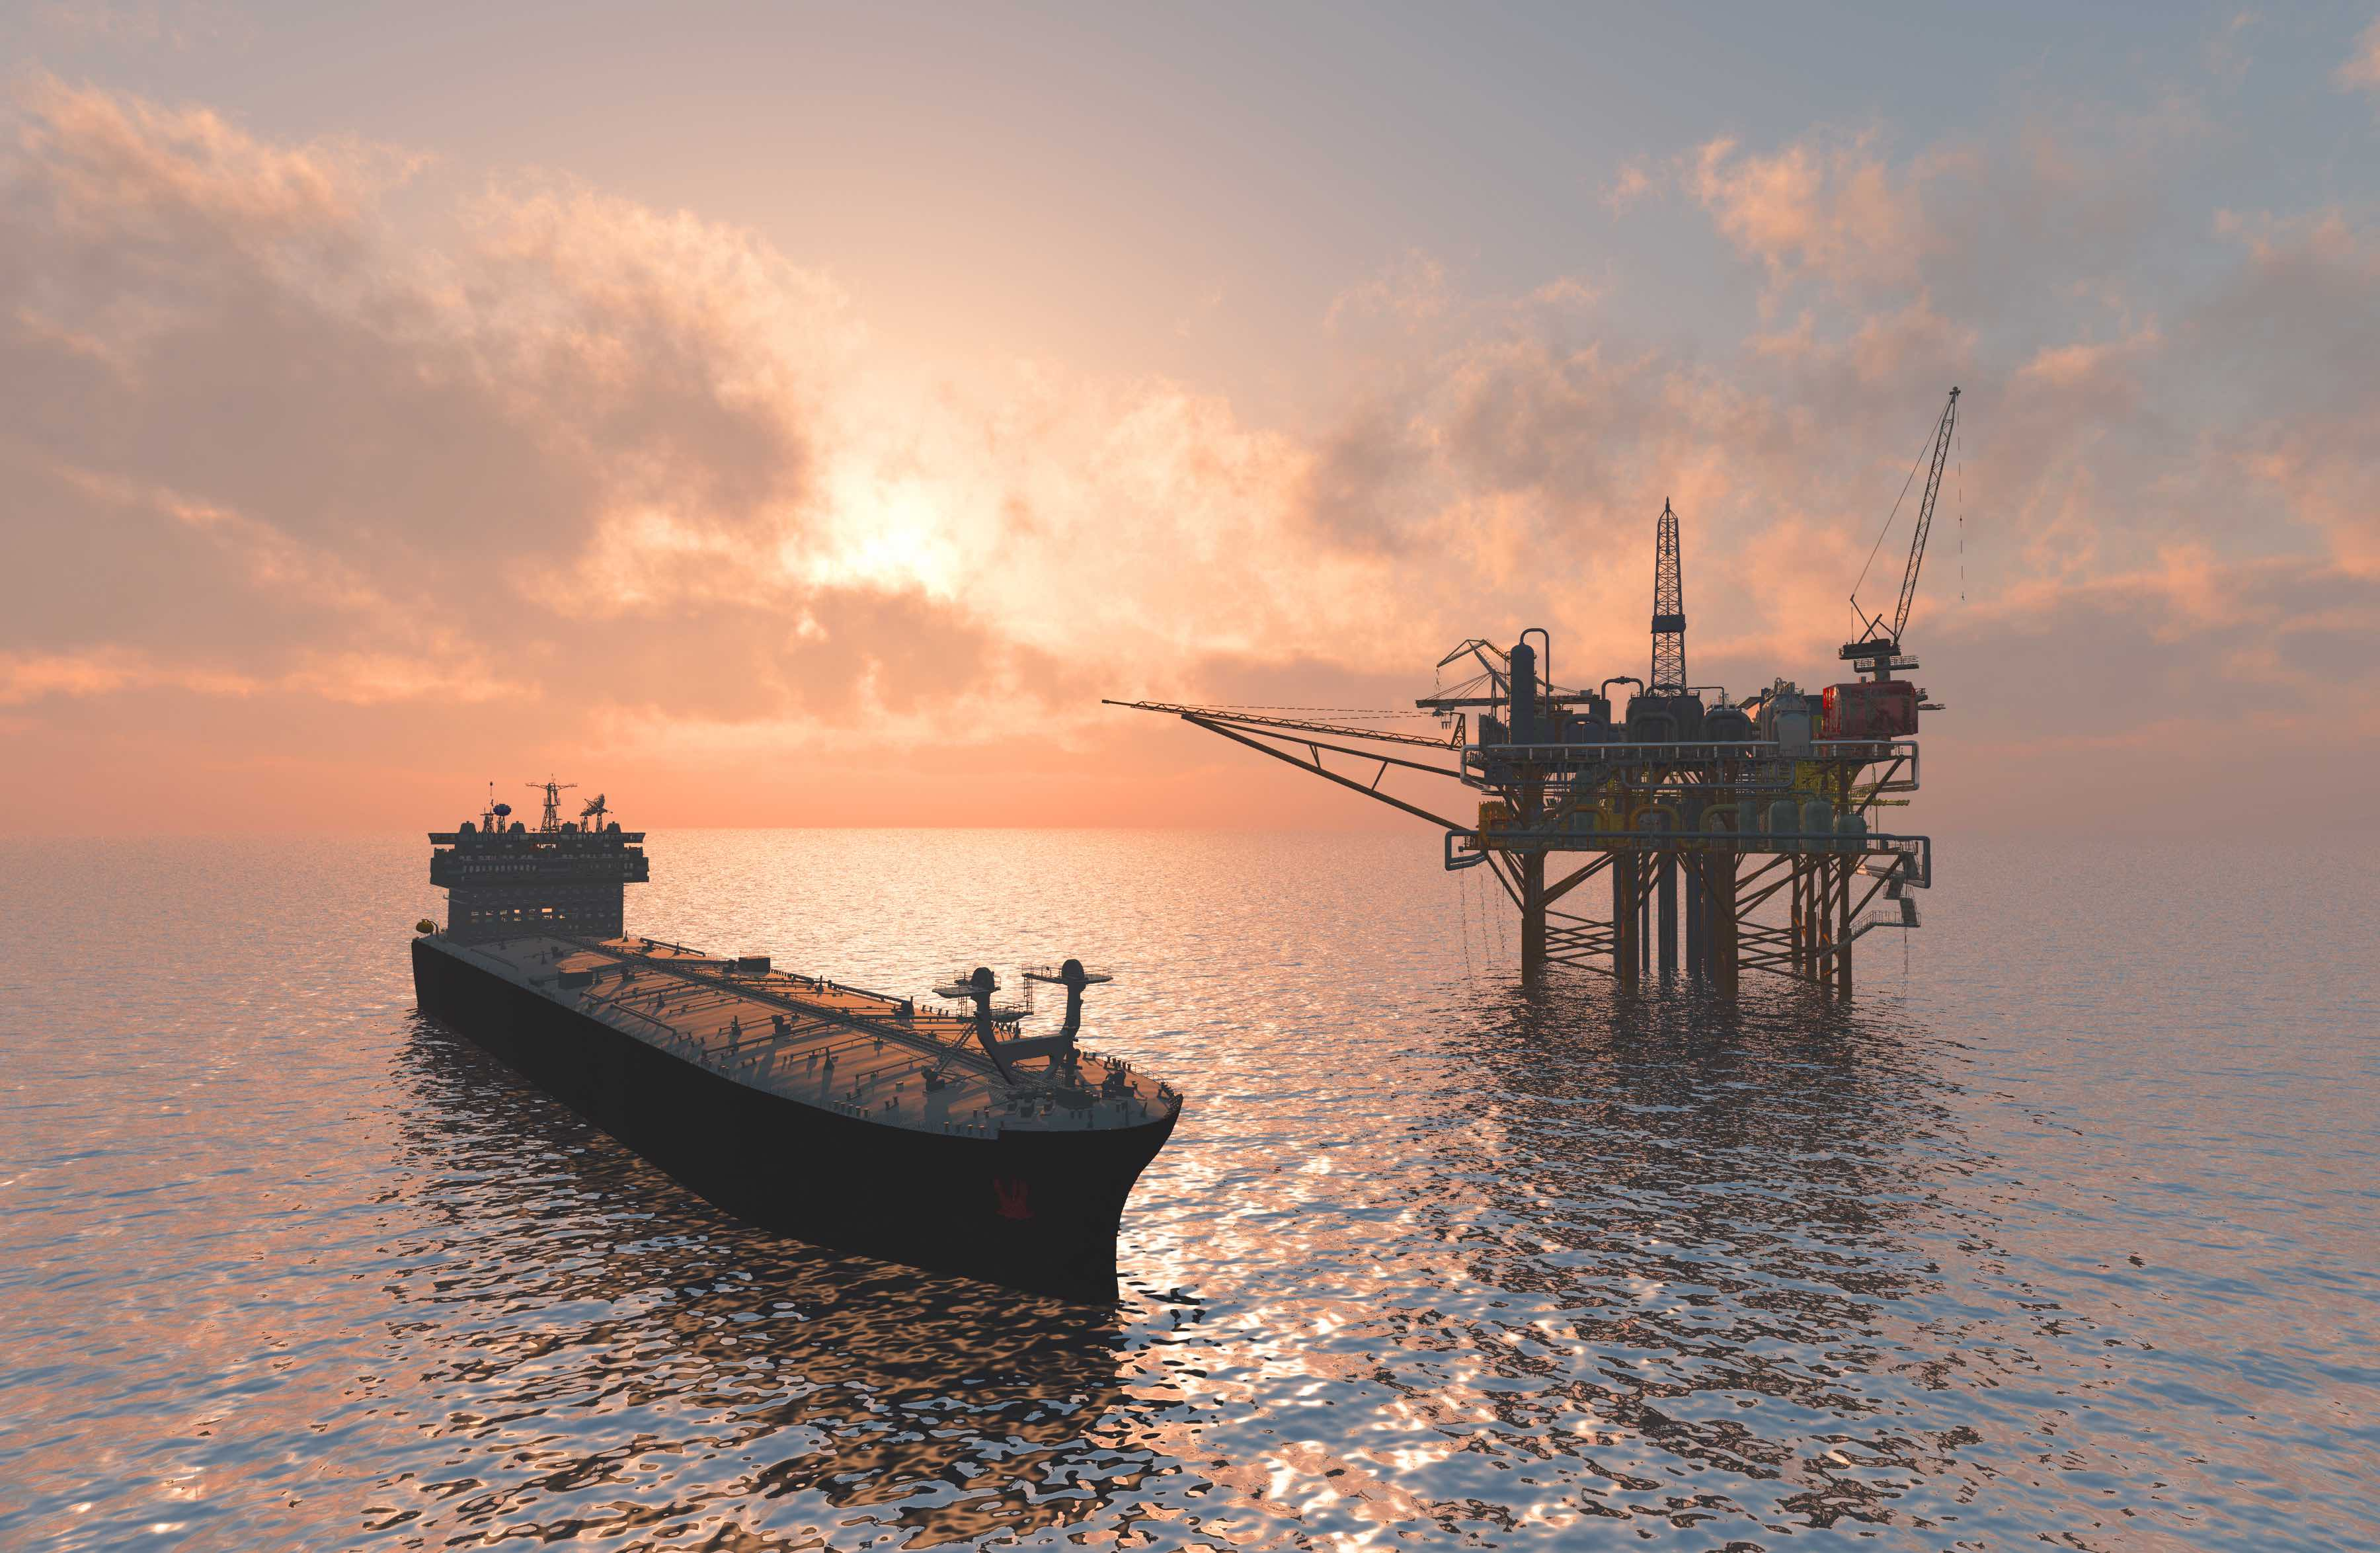 Appraisal well spudded within Fogelberg gas discovery in Norway